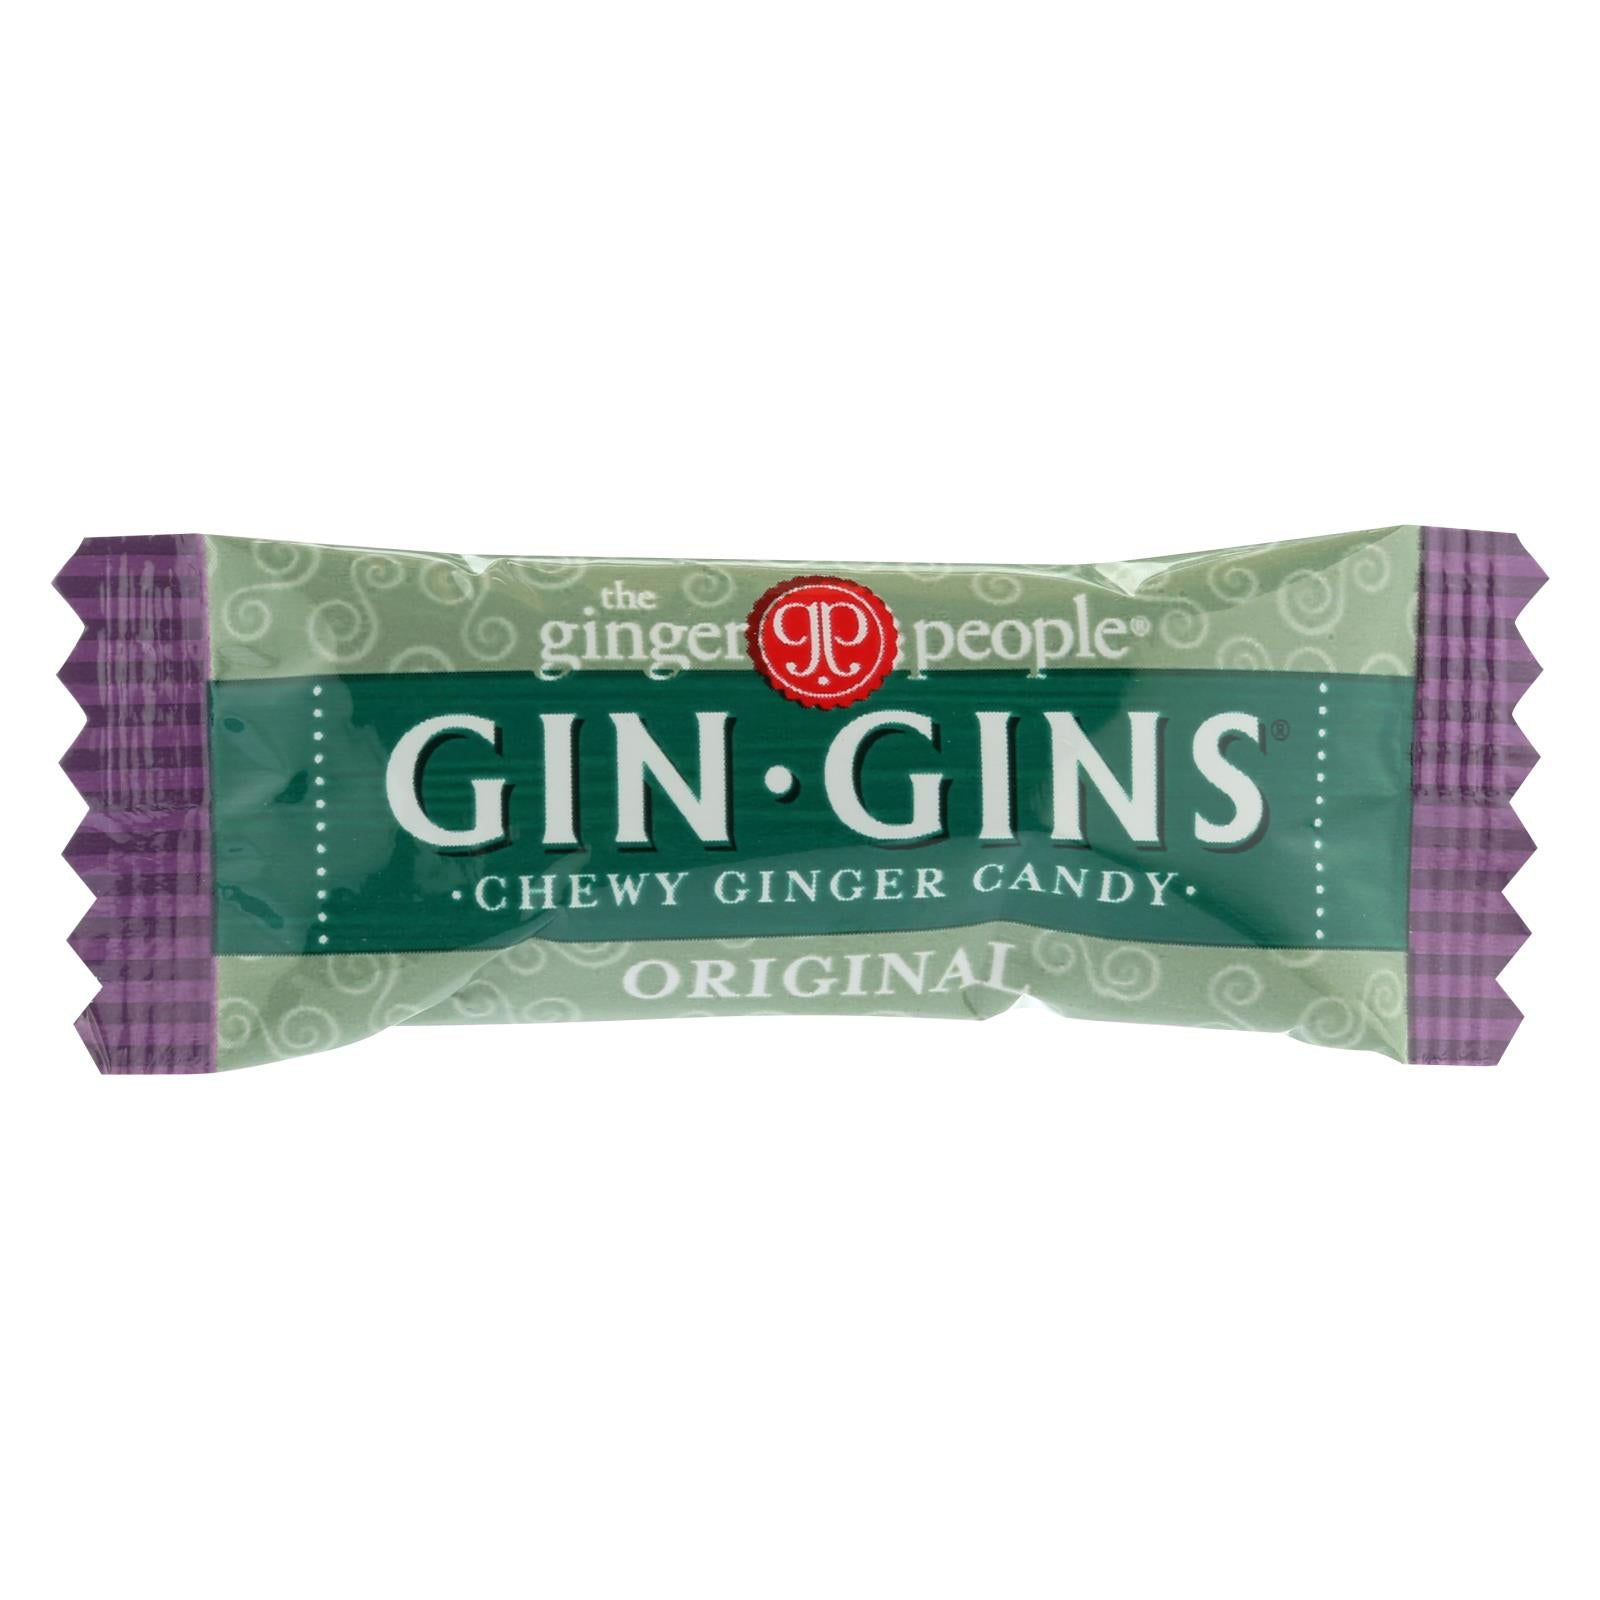 Buy Ginger People Ginger Chews - Original - Case of 11 lbs - Candy and Chewing Gum from Veroeco.com